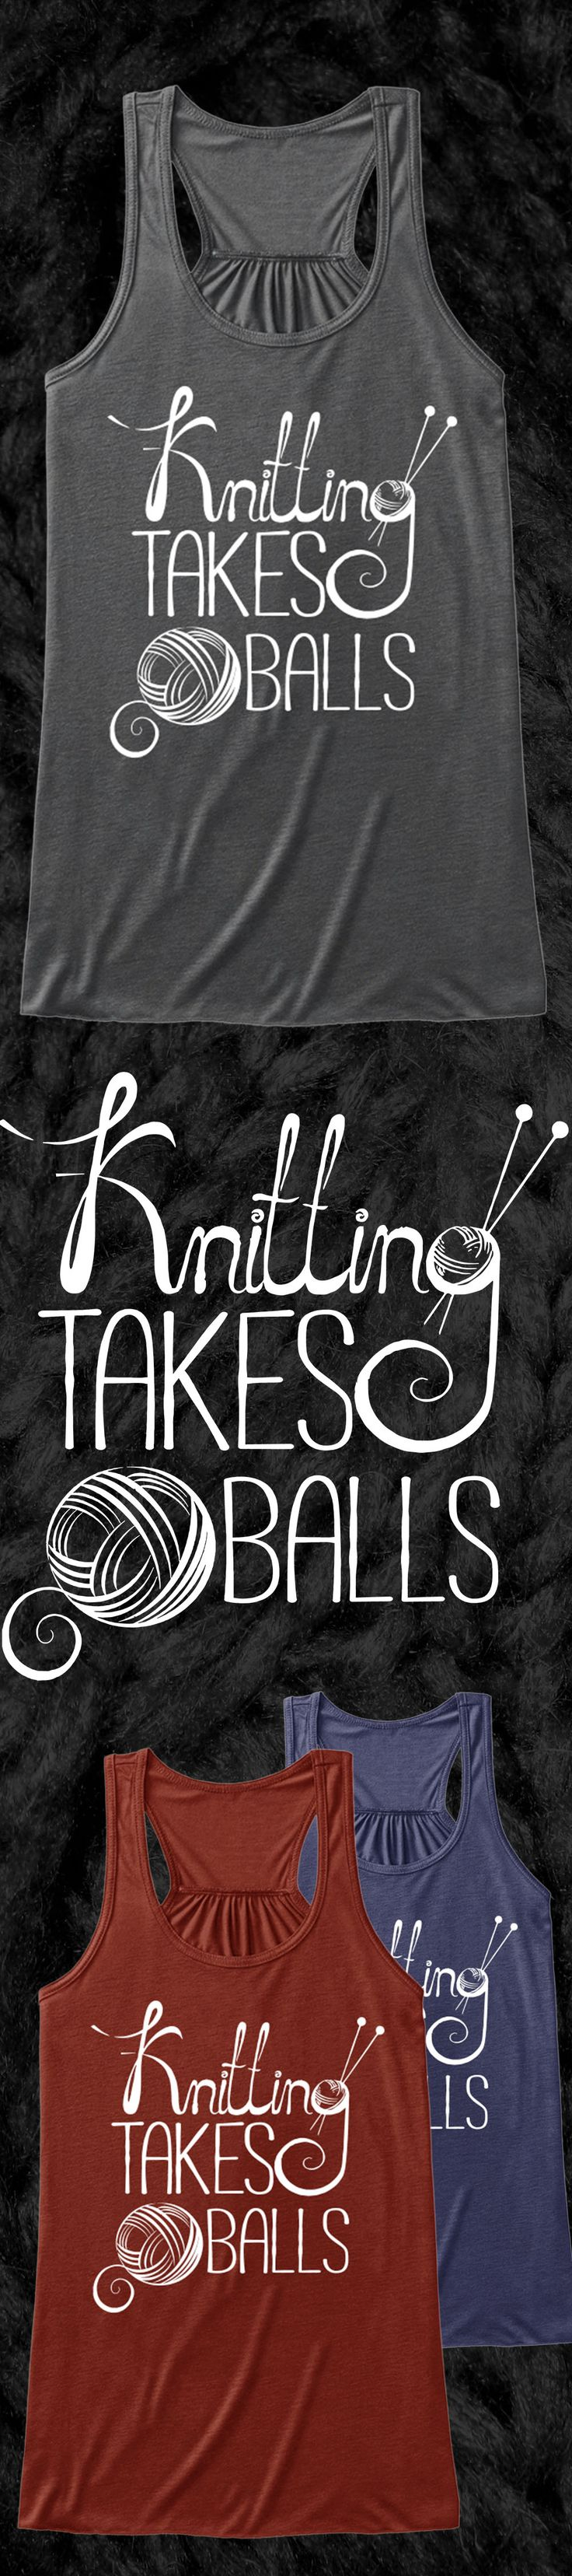 Knitting Takes Balls - Limited Edition. Only 2 days left for FREE SHIPPING, grab yours or gift it to a friend. You will both love it